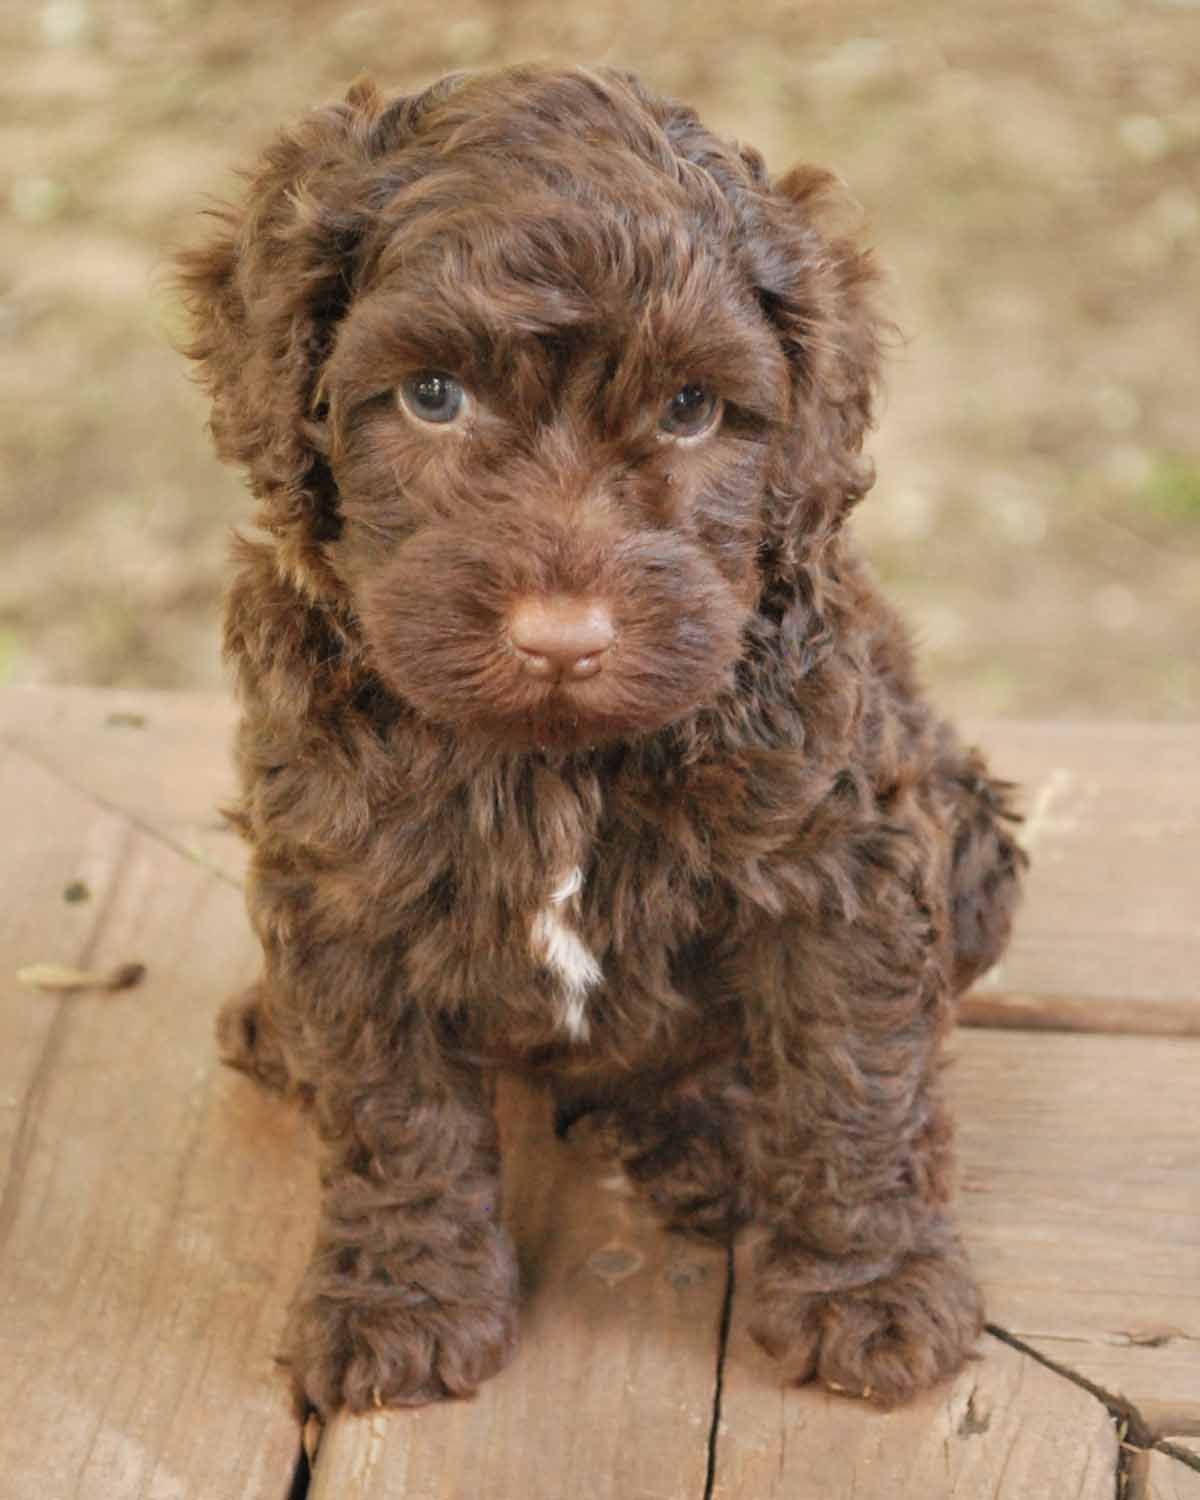 Chocolate Labradoodle Puppy Our New Baby Will Be Home May 24 Pictures Soon Of Labradoodle Puppy Australian Labradoodle Puppies Chocolate Labradoodle Puppy